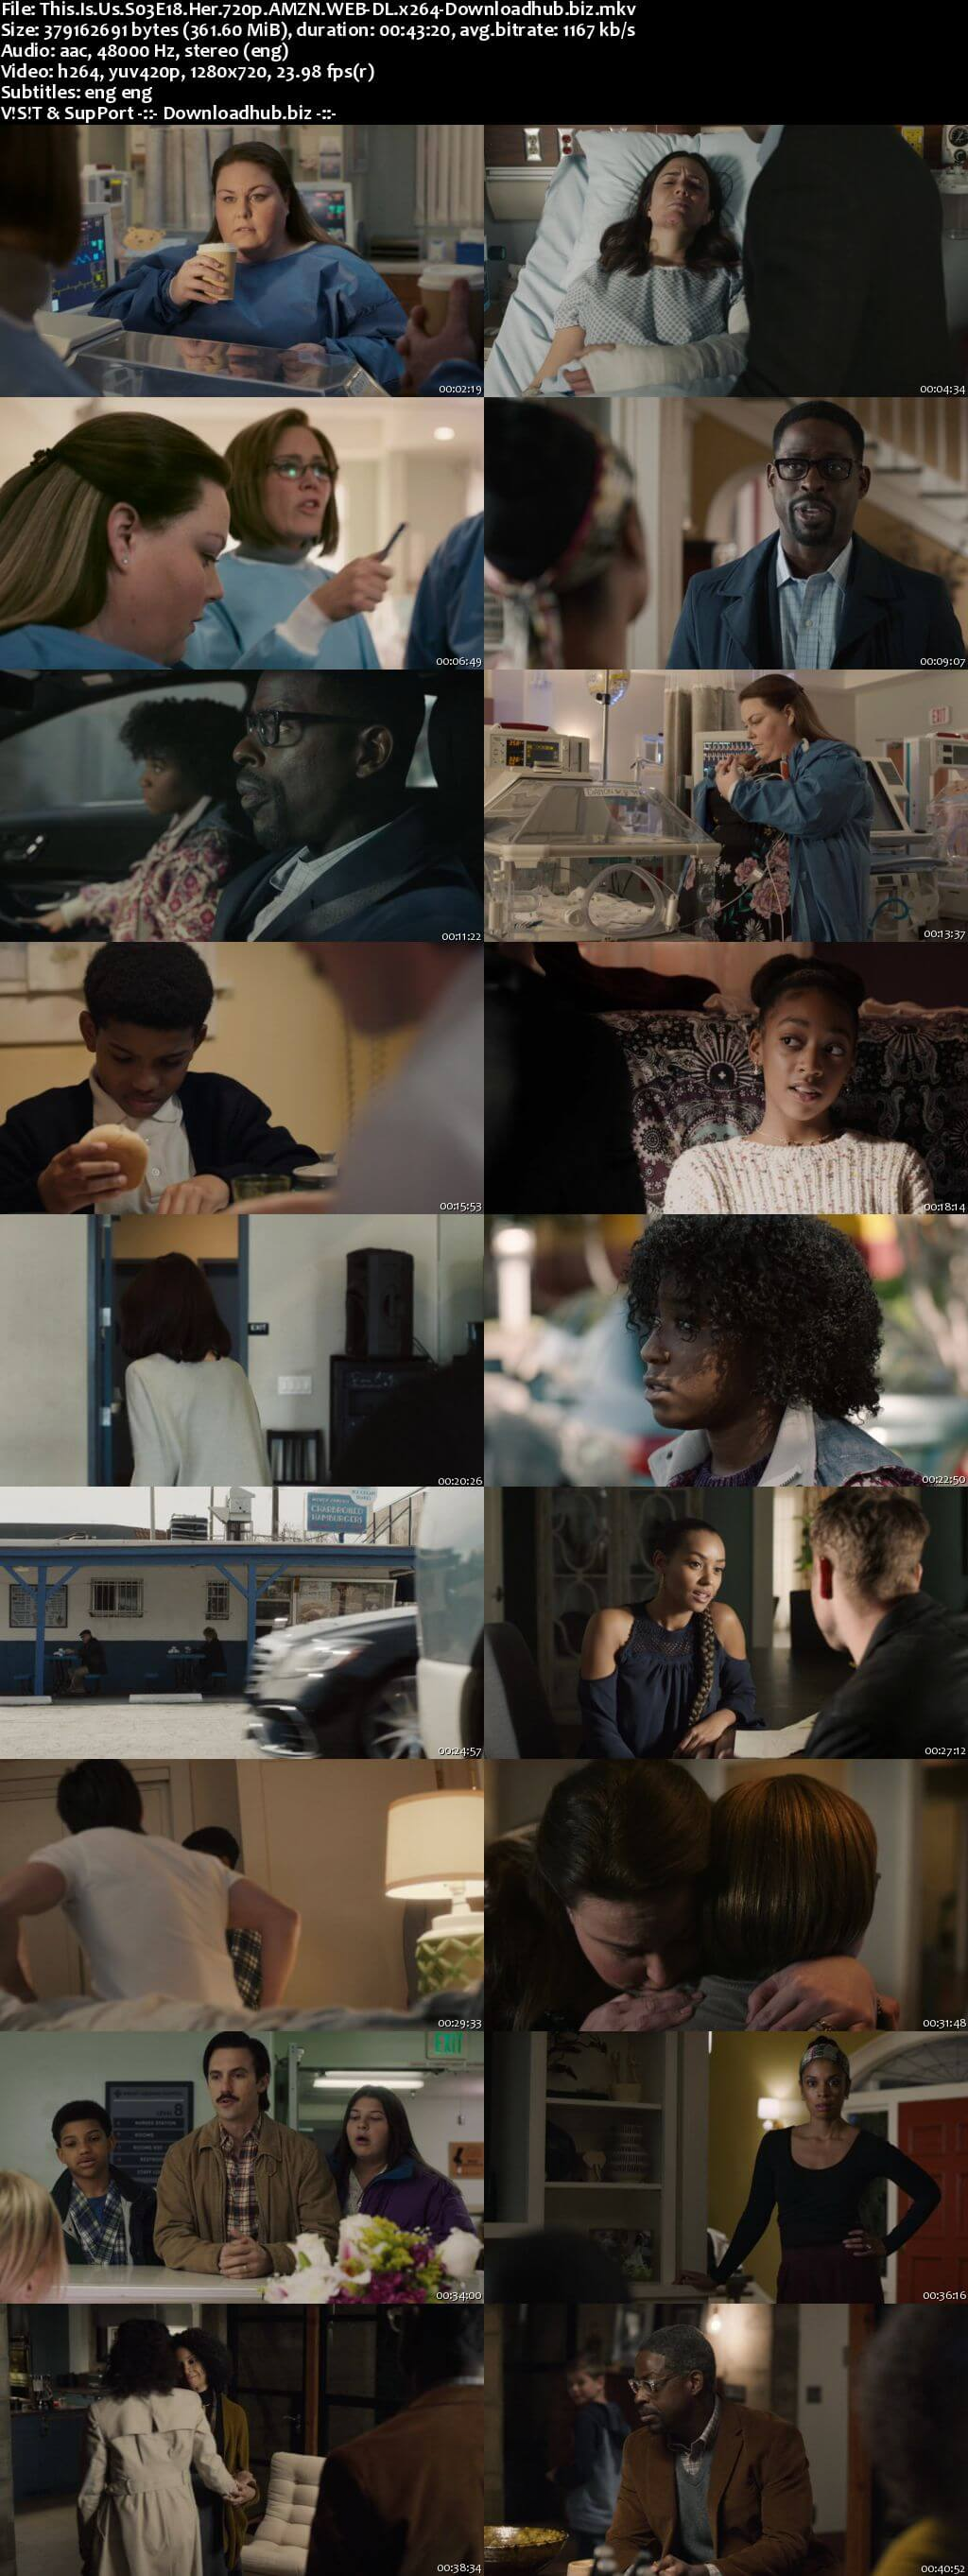 This Is Us S03E18 350MB AMZN WEB-DL 720p ESubs